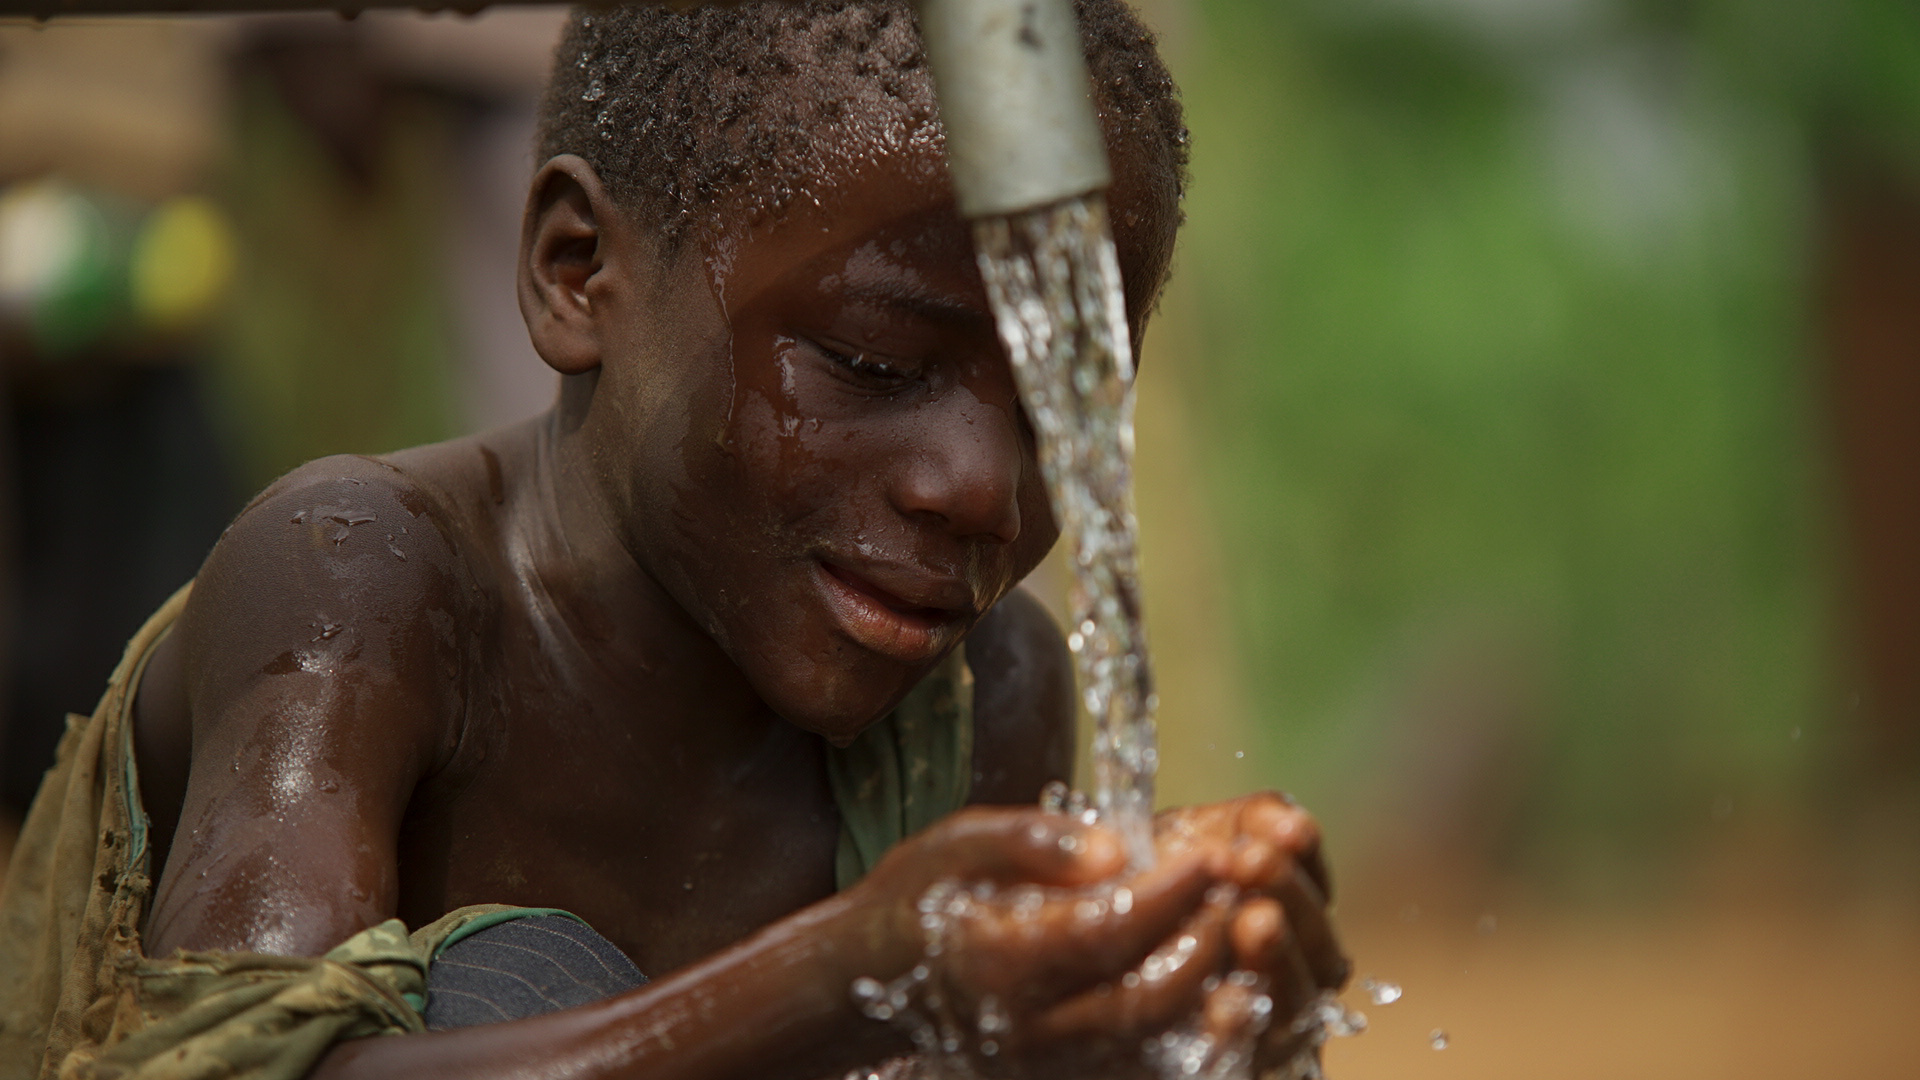 Reliability is everything - 1 in 3 hand pumps in Africa don't work.Whave is showing how 100% functionality is possible.